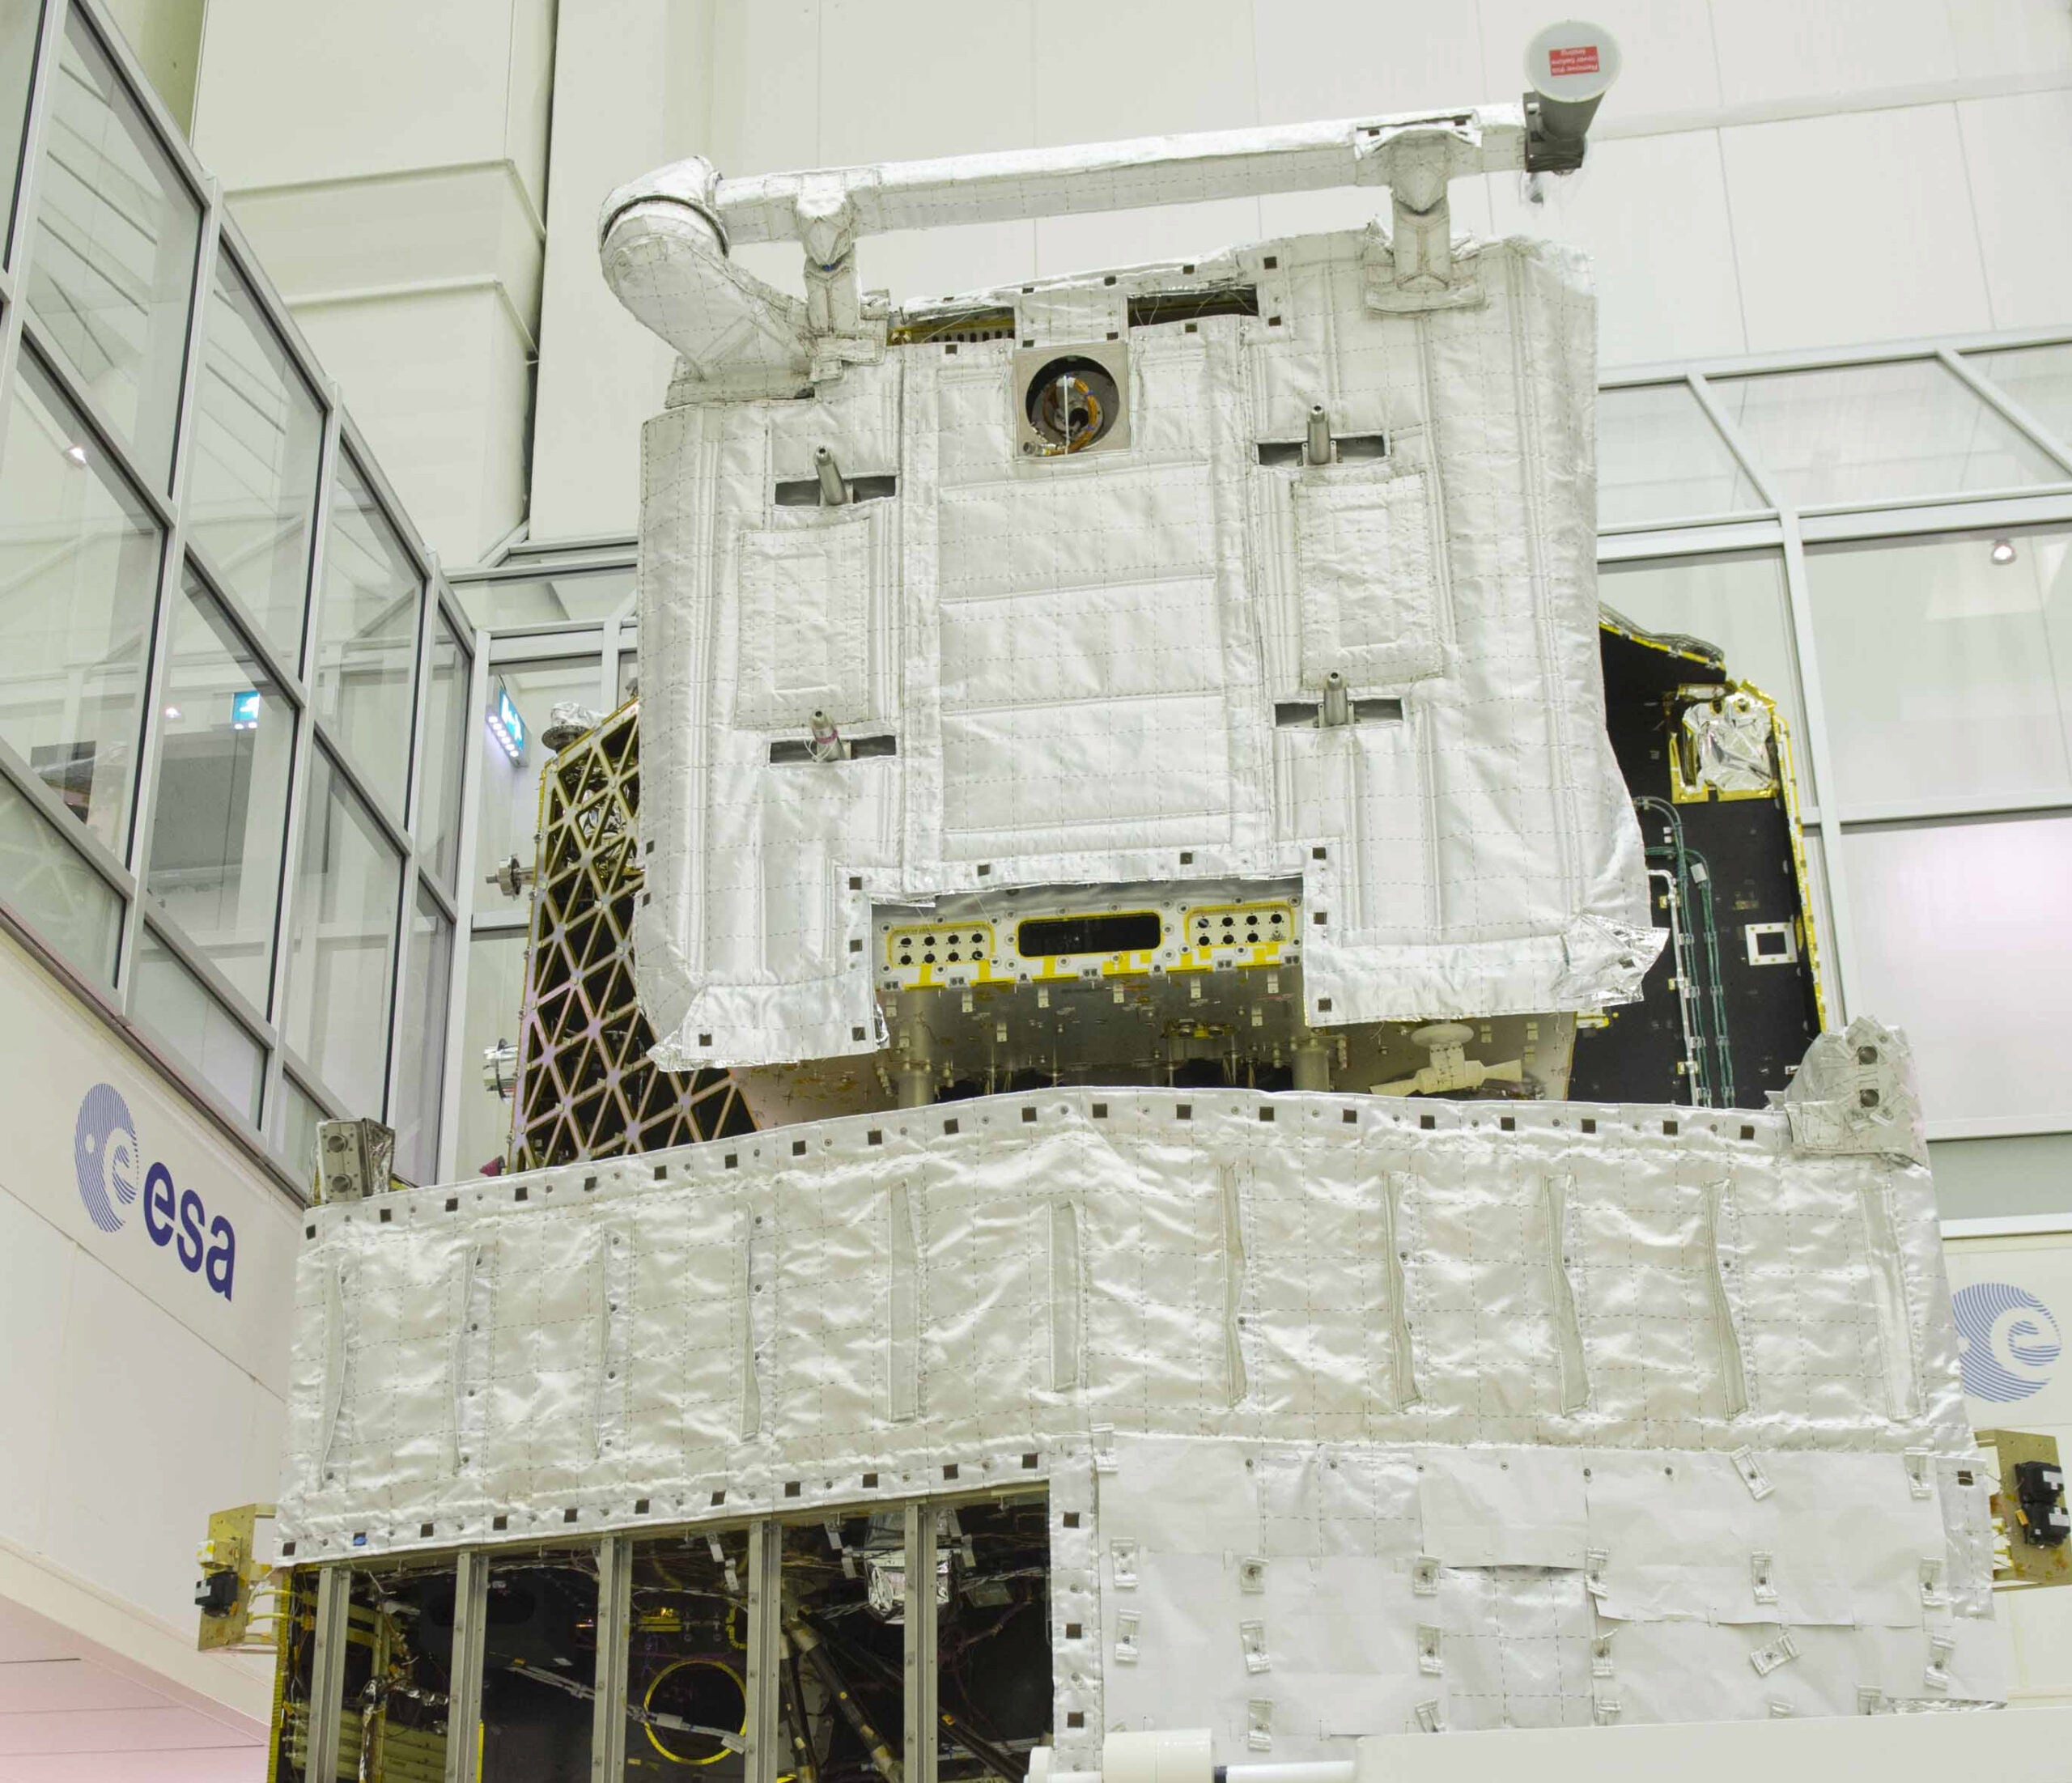 BigPic: A Model Of BepiColombo, The Spacecraft That'll Explore Mercury